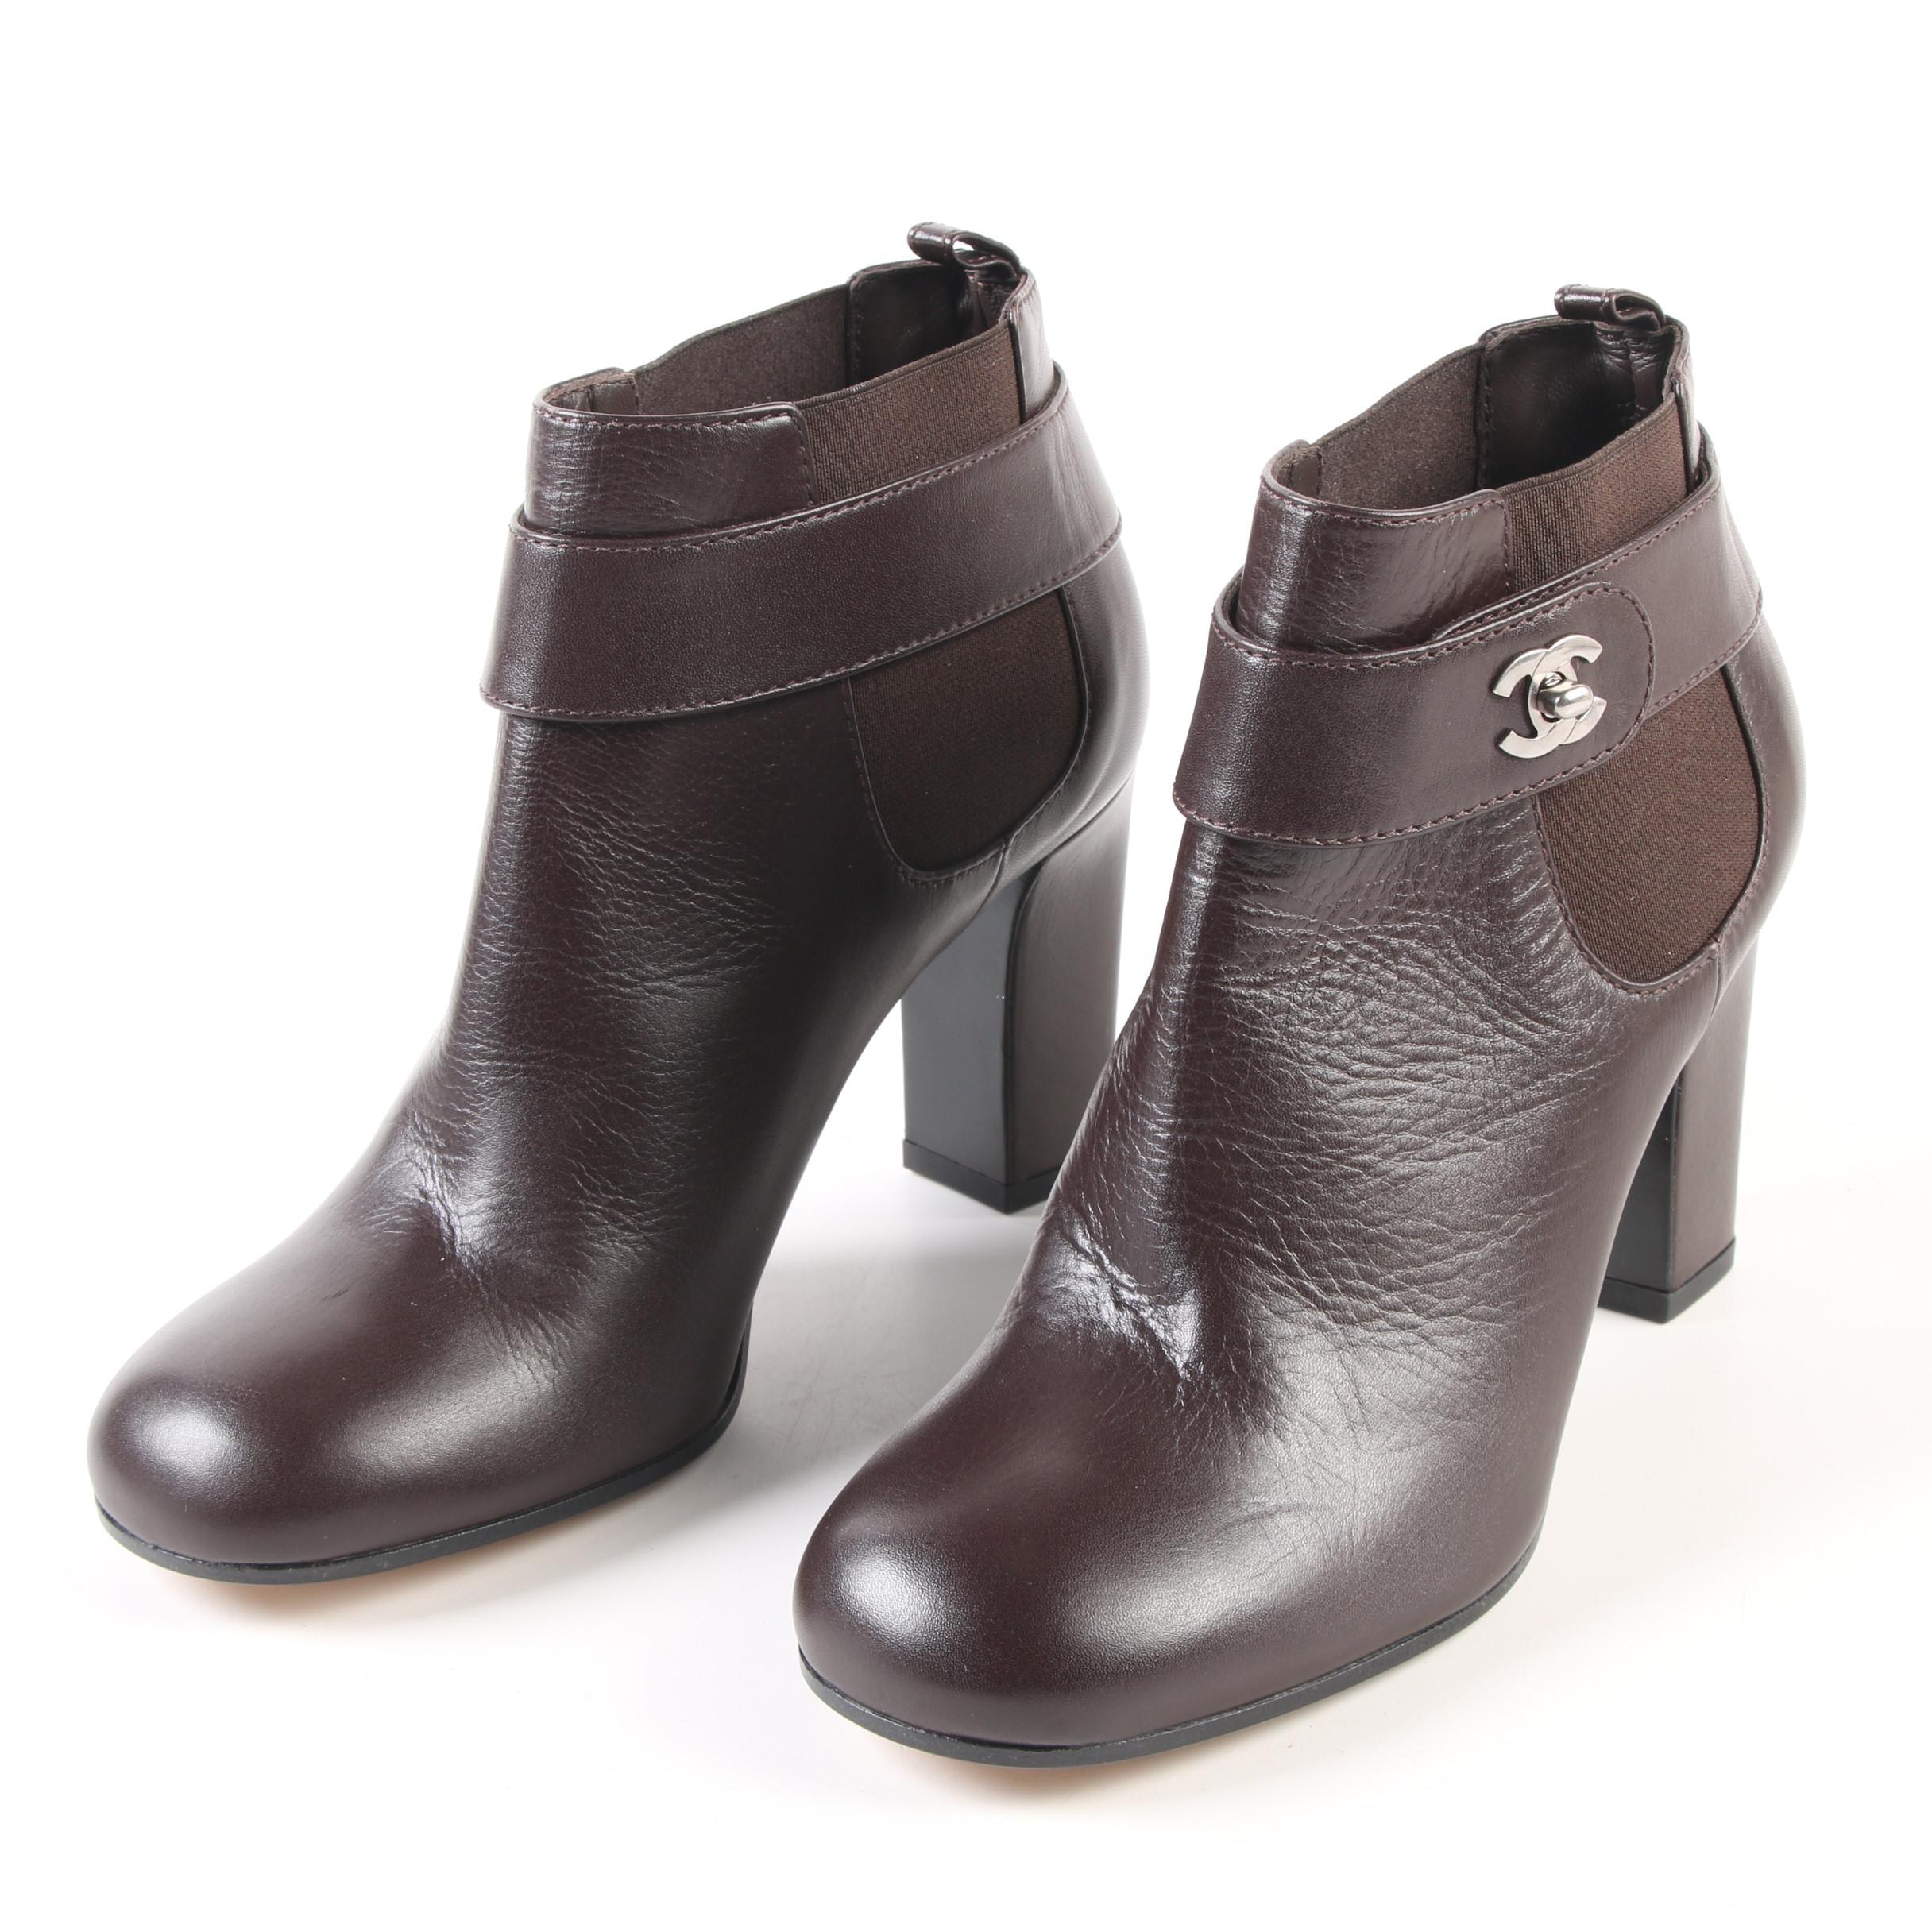 Chanel Brown Leather Chelsea Boots with CC Turnlock Straps